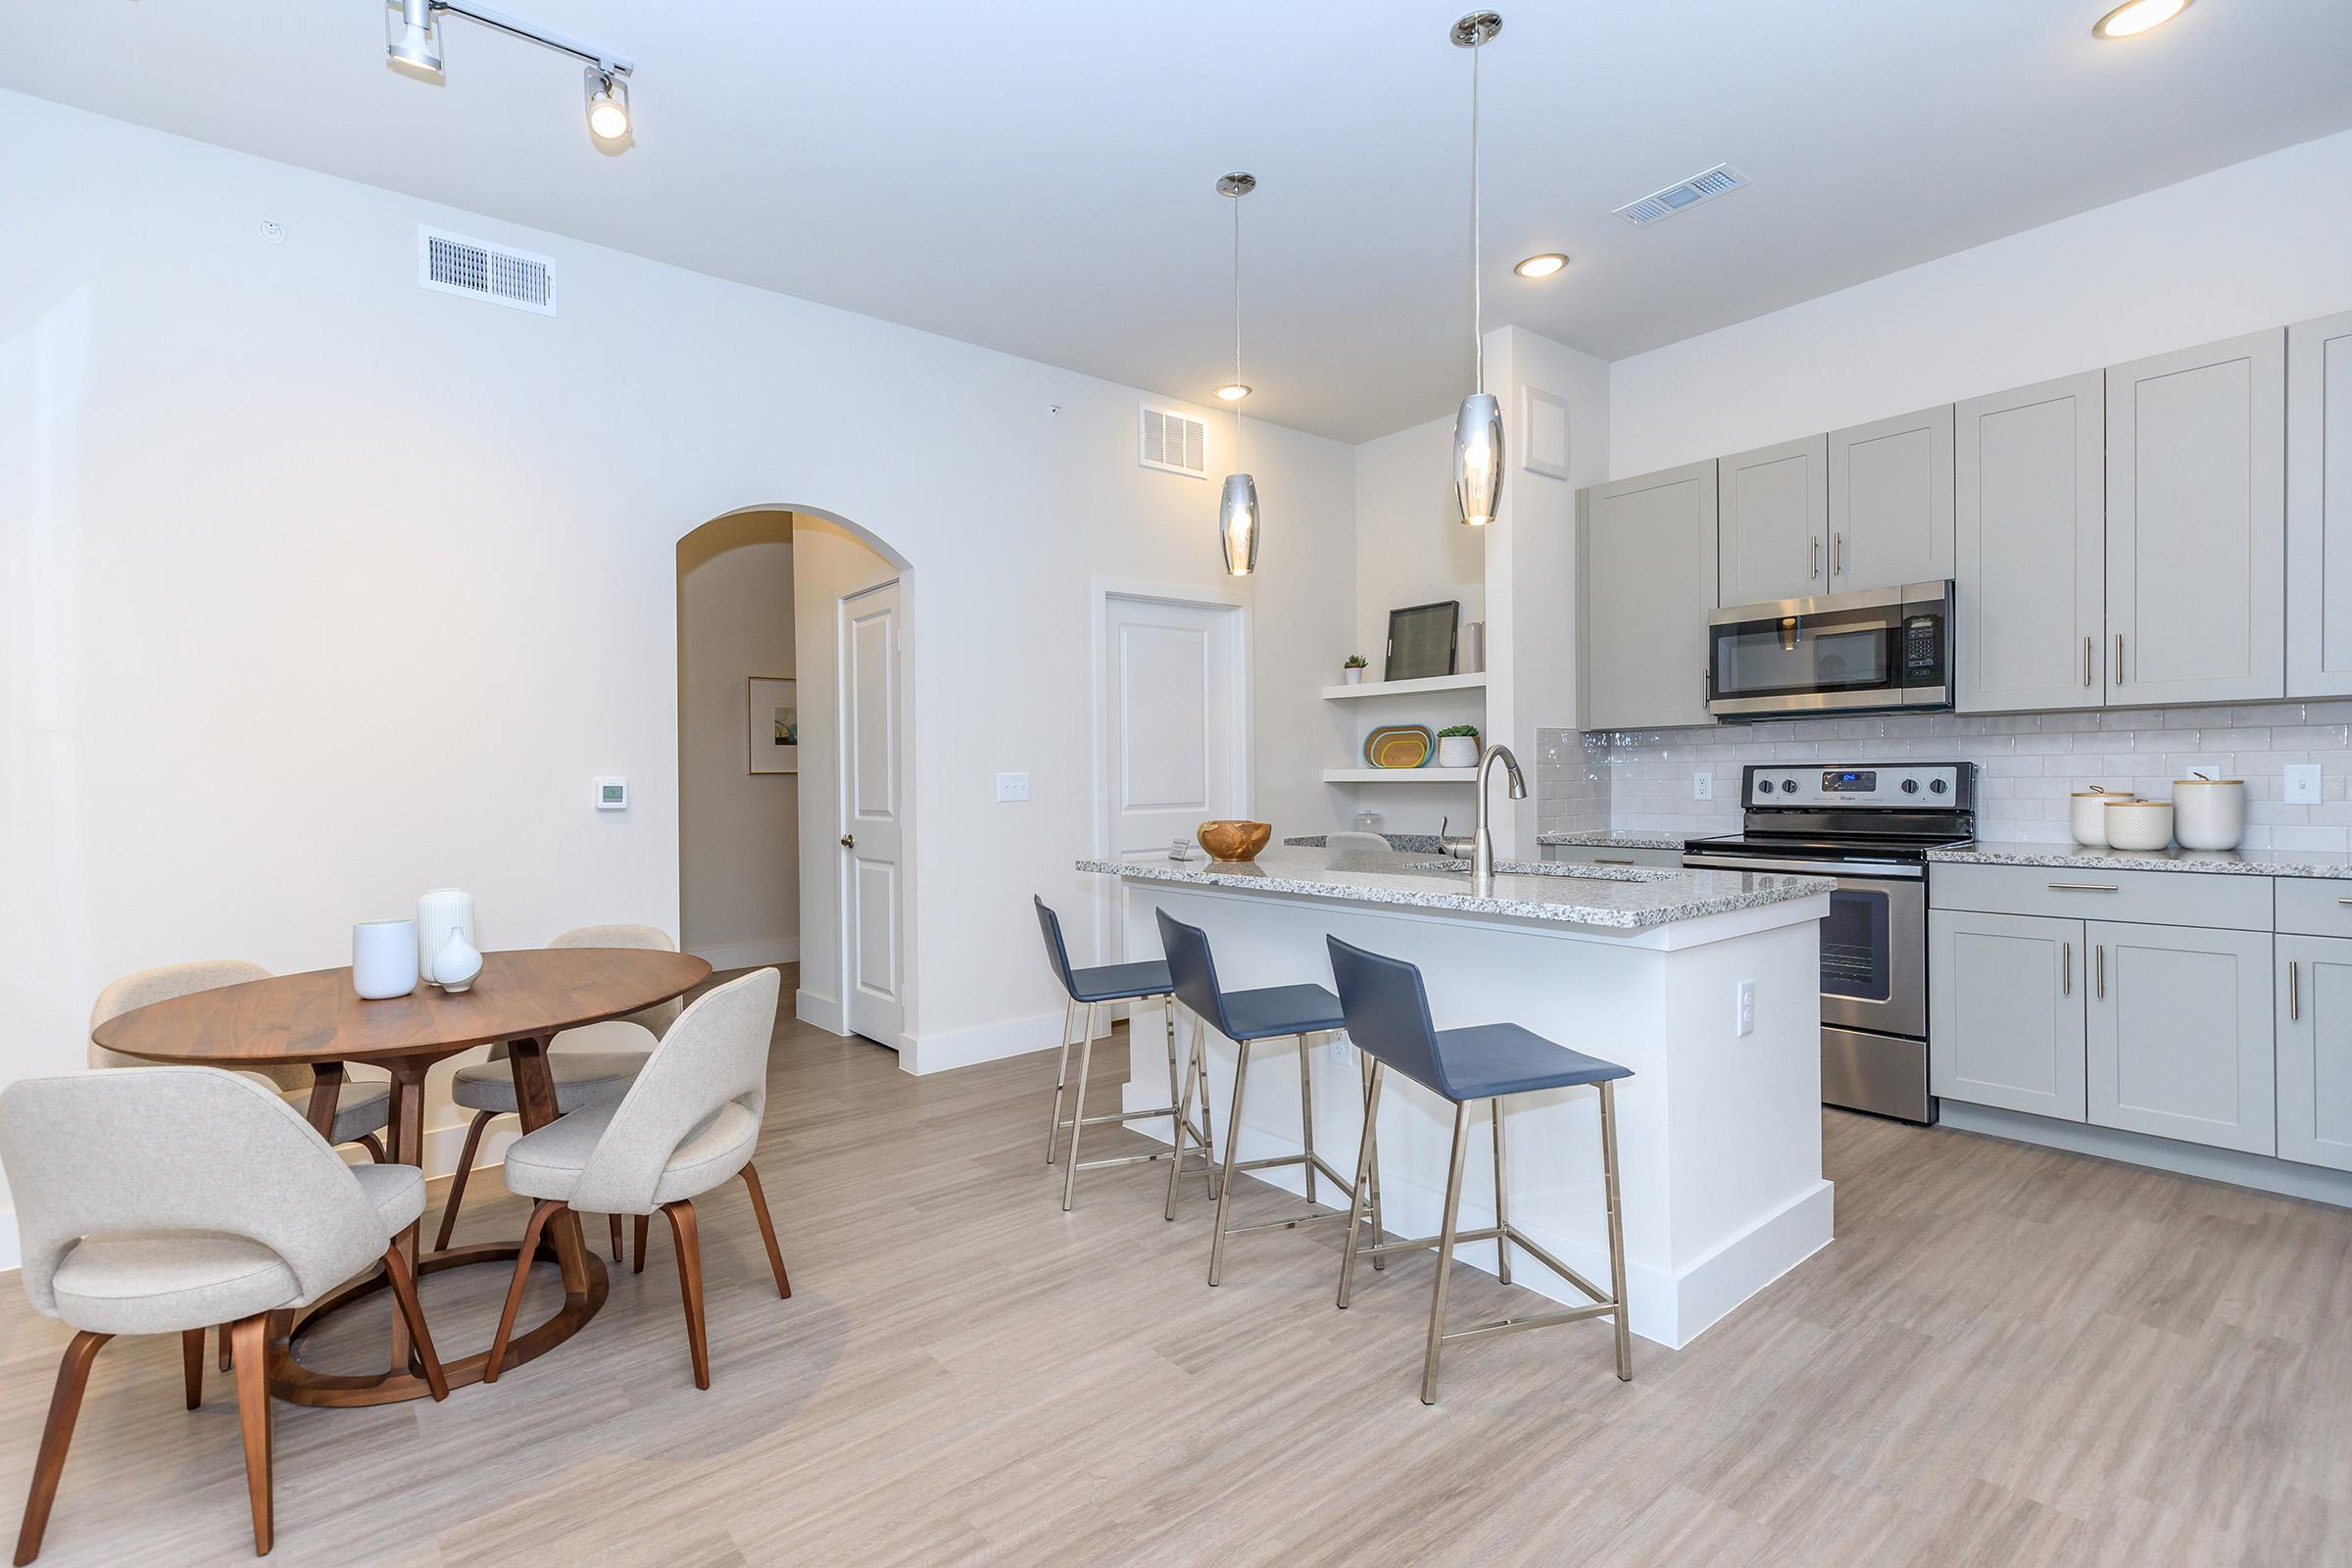 a kitchen with a table and chairs in a room